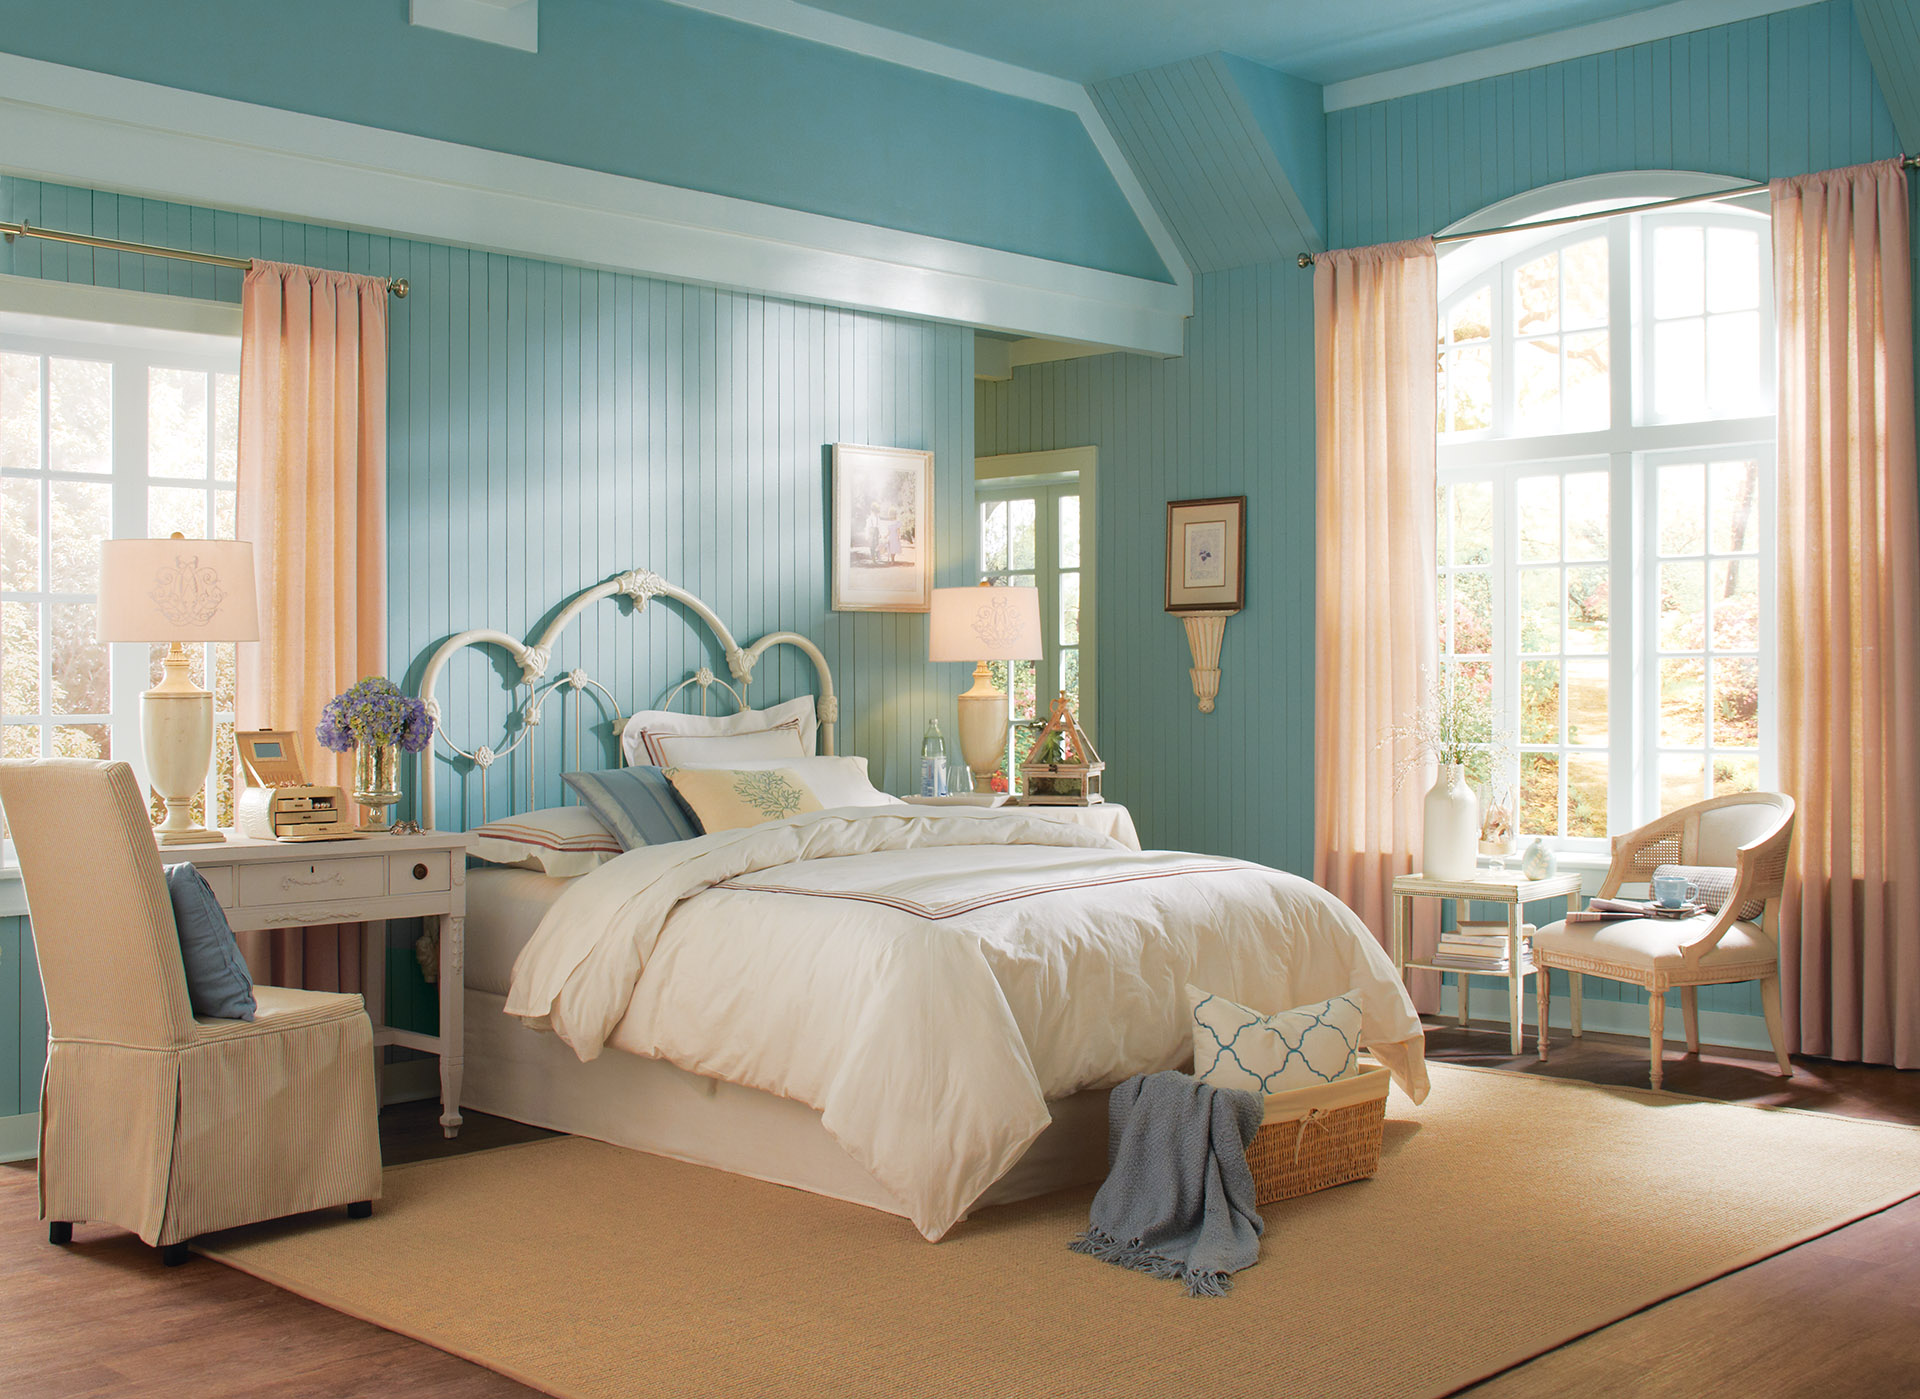 Paint Tips For Your Bedroom Ace Tips Amp Advice